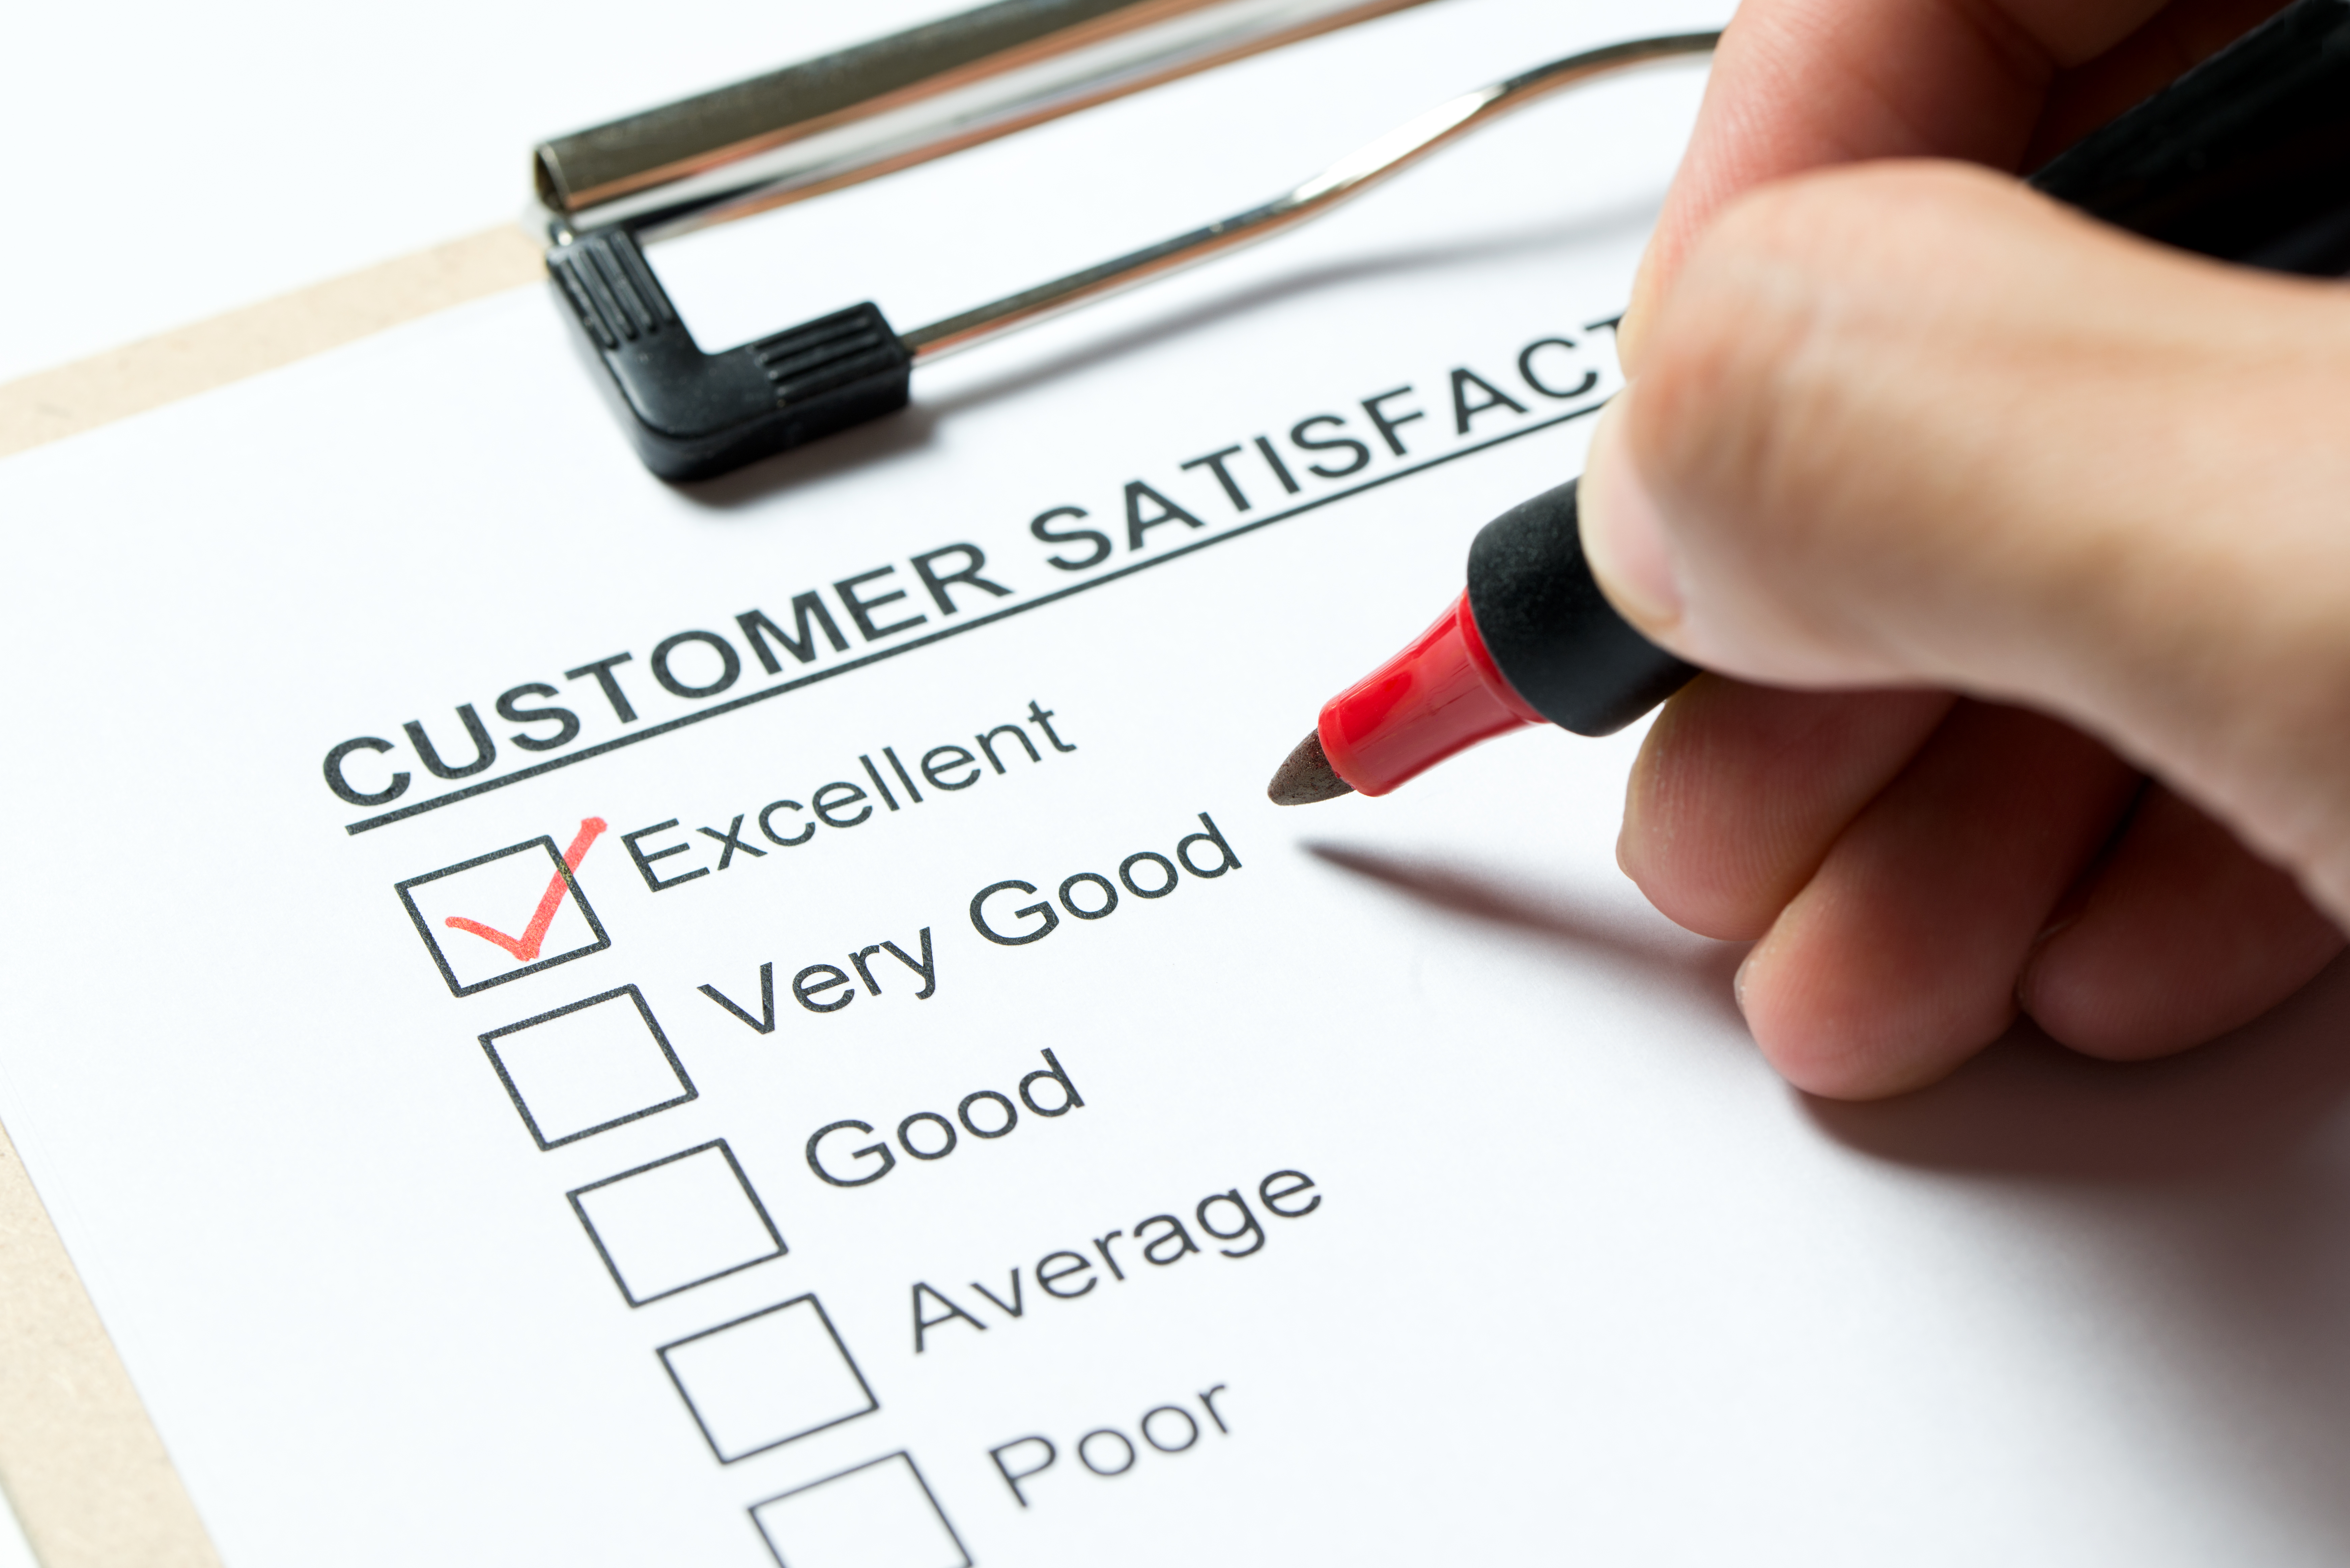 Questions fermées. Customer satisfaction survey form on clipboard with red pen